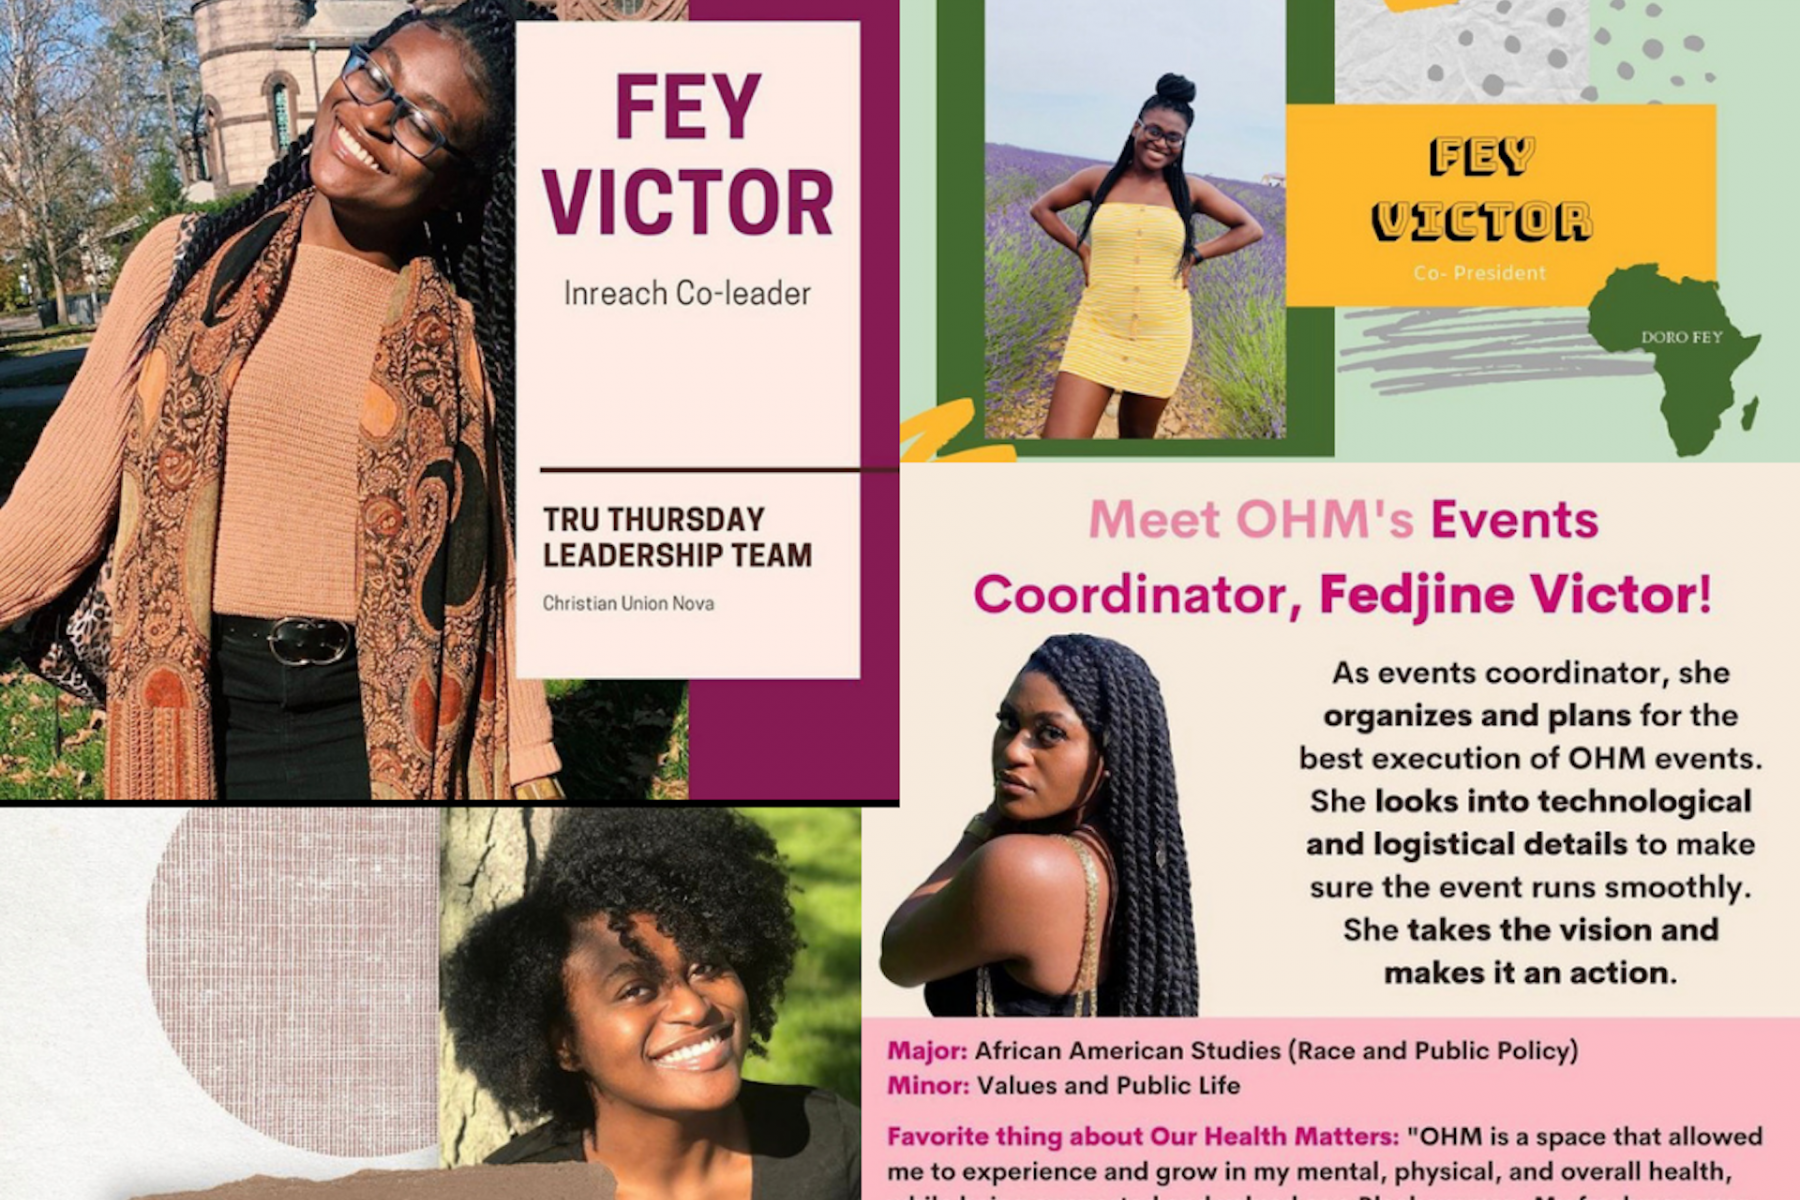 Fey's leadership positions